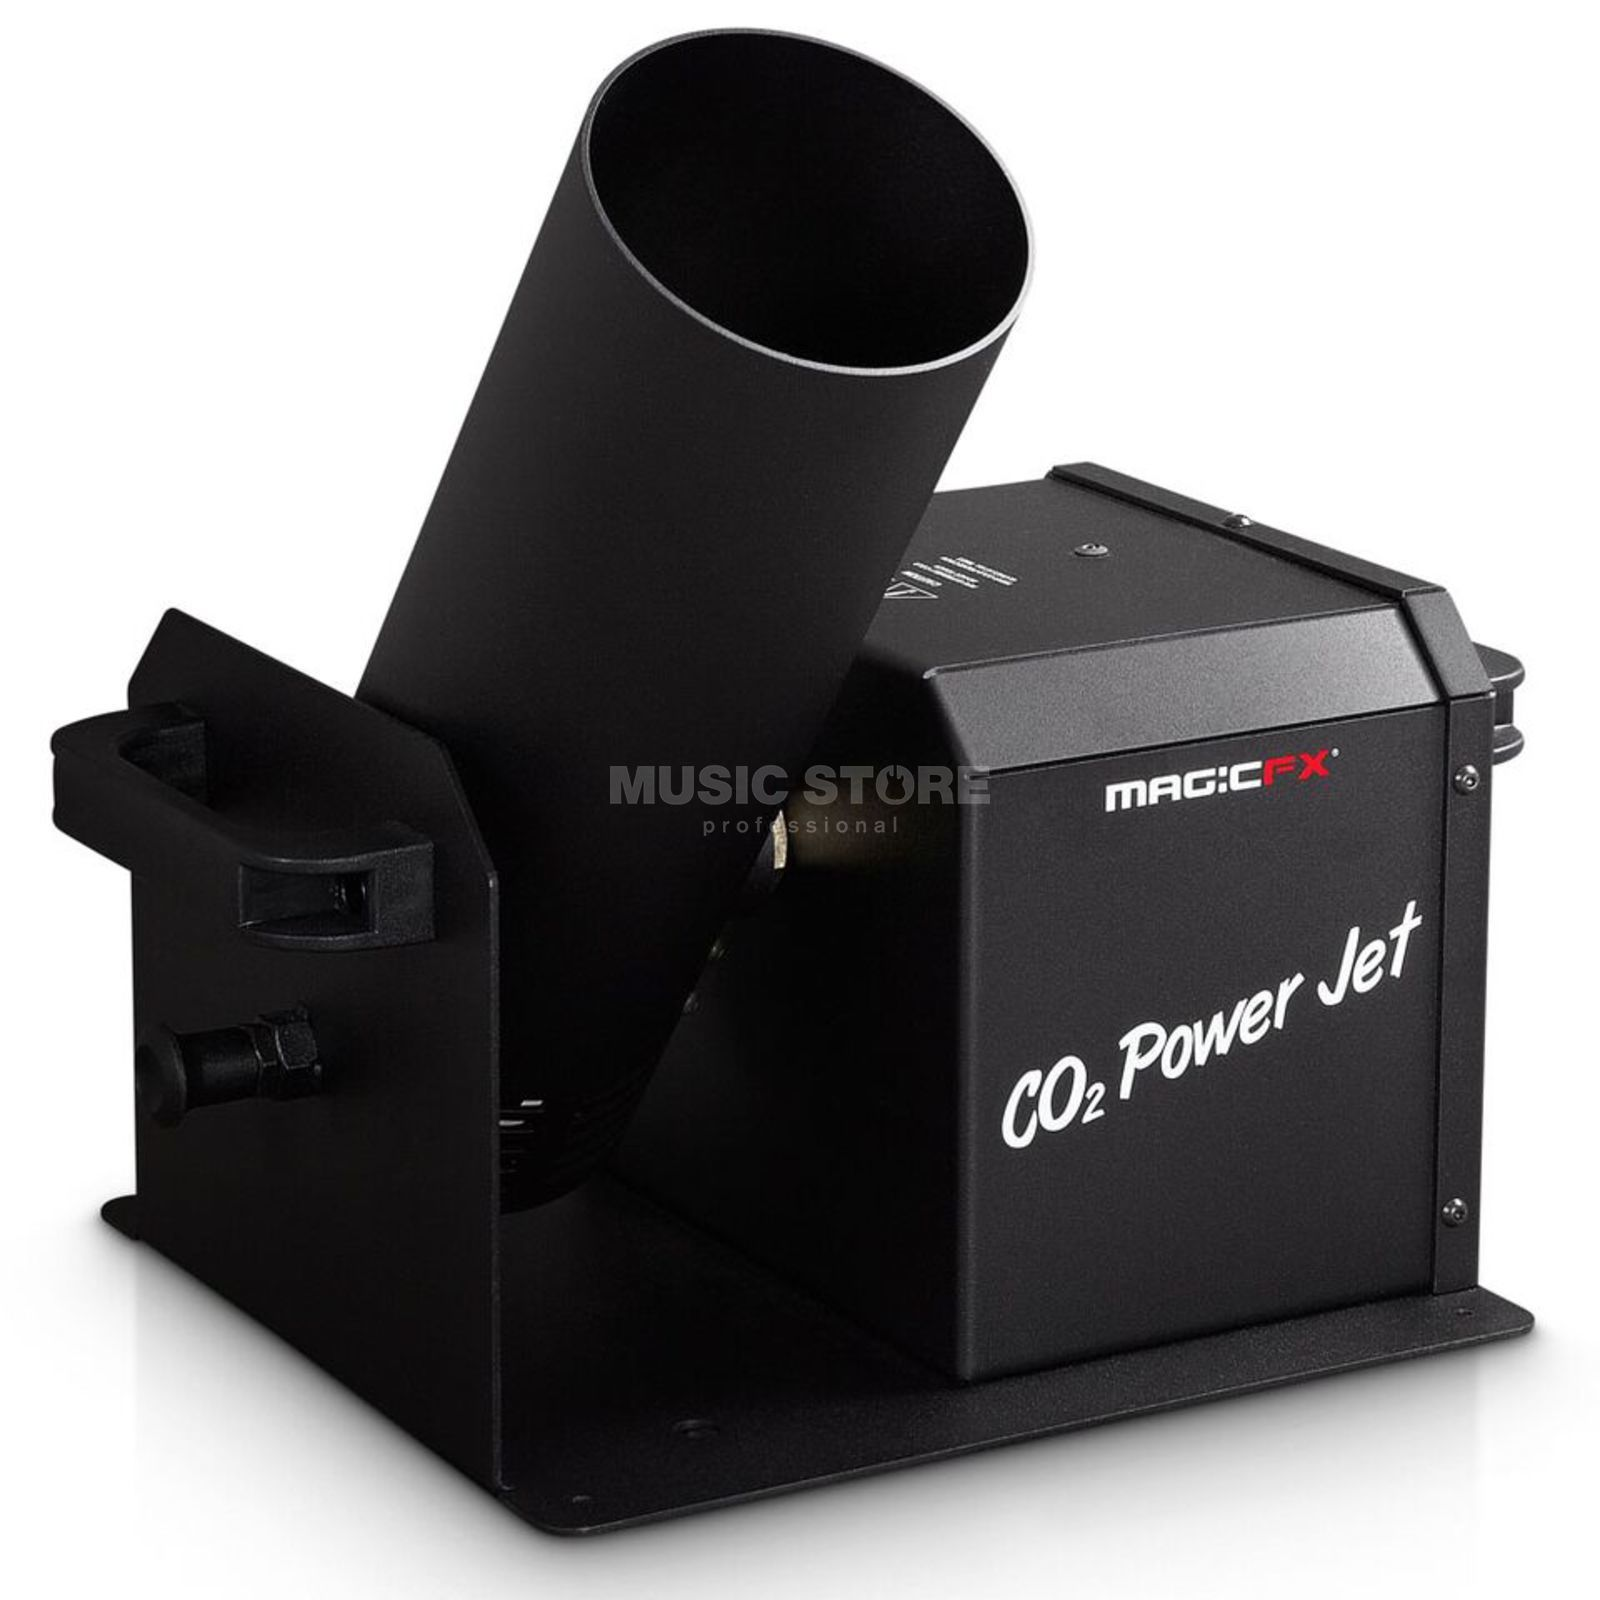 MagicFX CO2 Power Jet Produktbillede